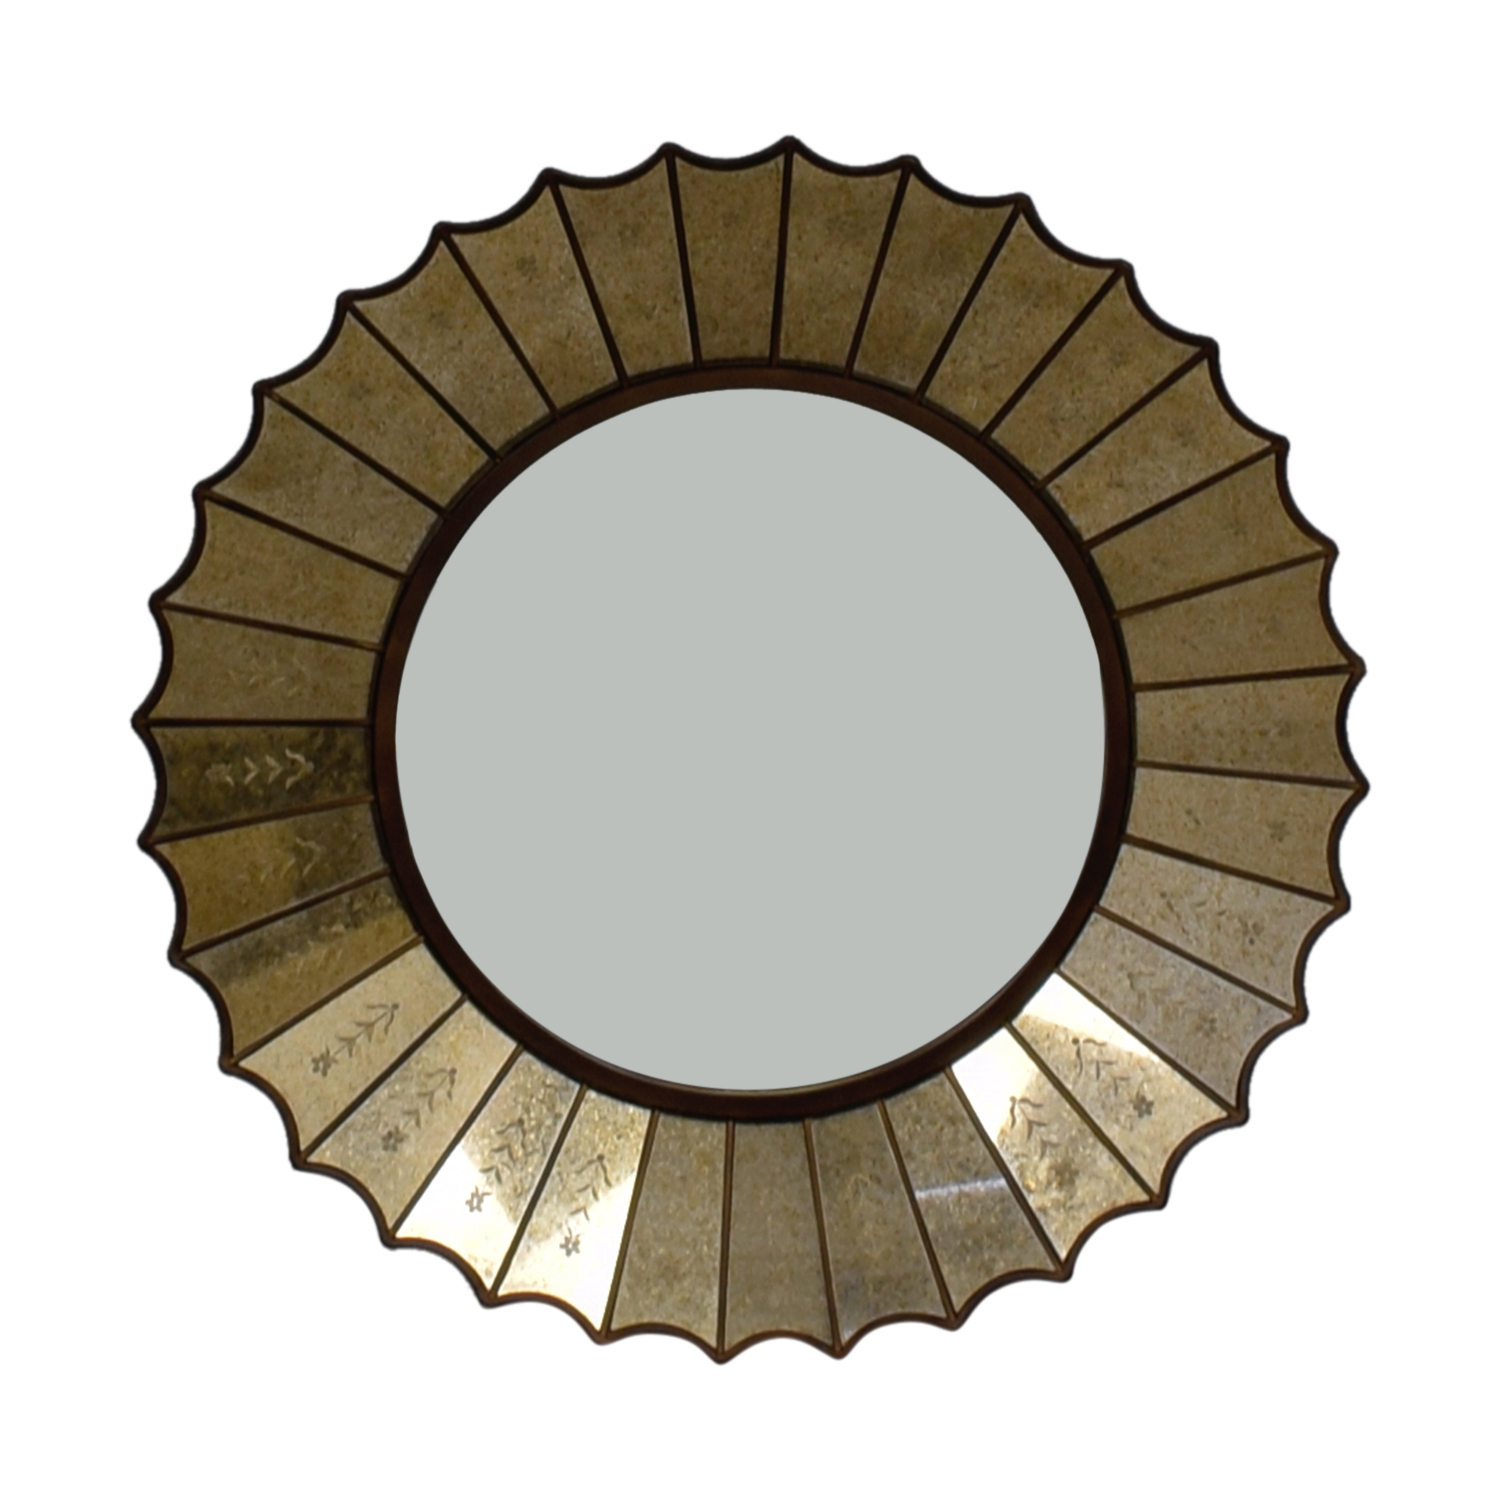 90 Off Horchow Horchow Round Decorative Mirror Decor